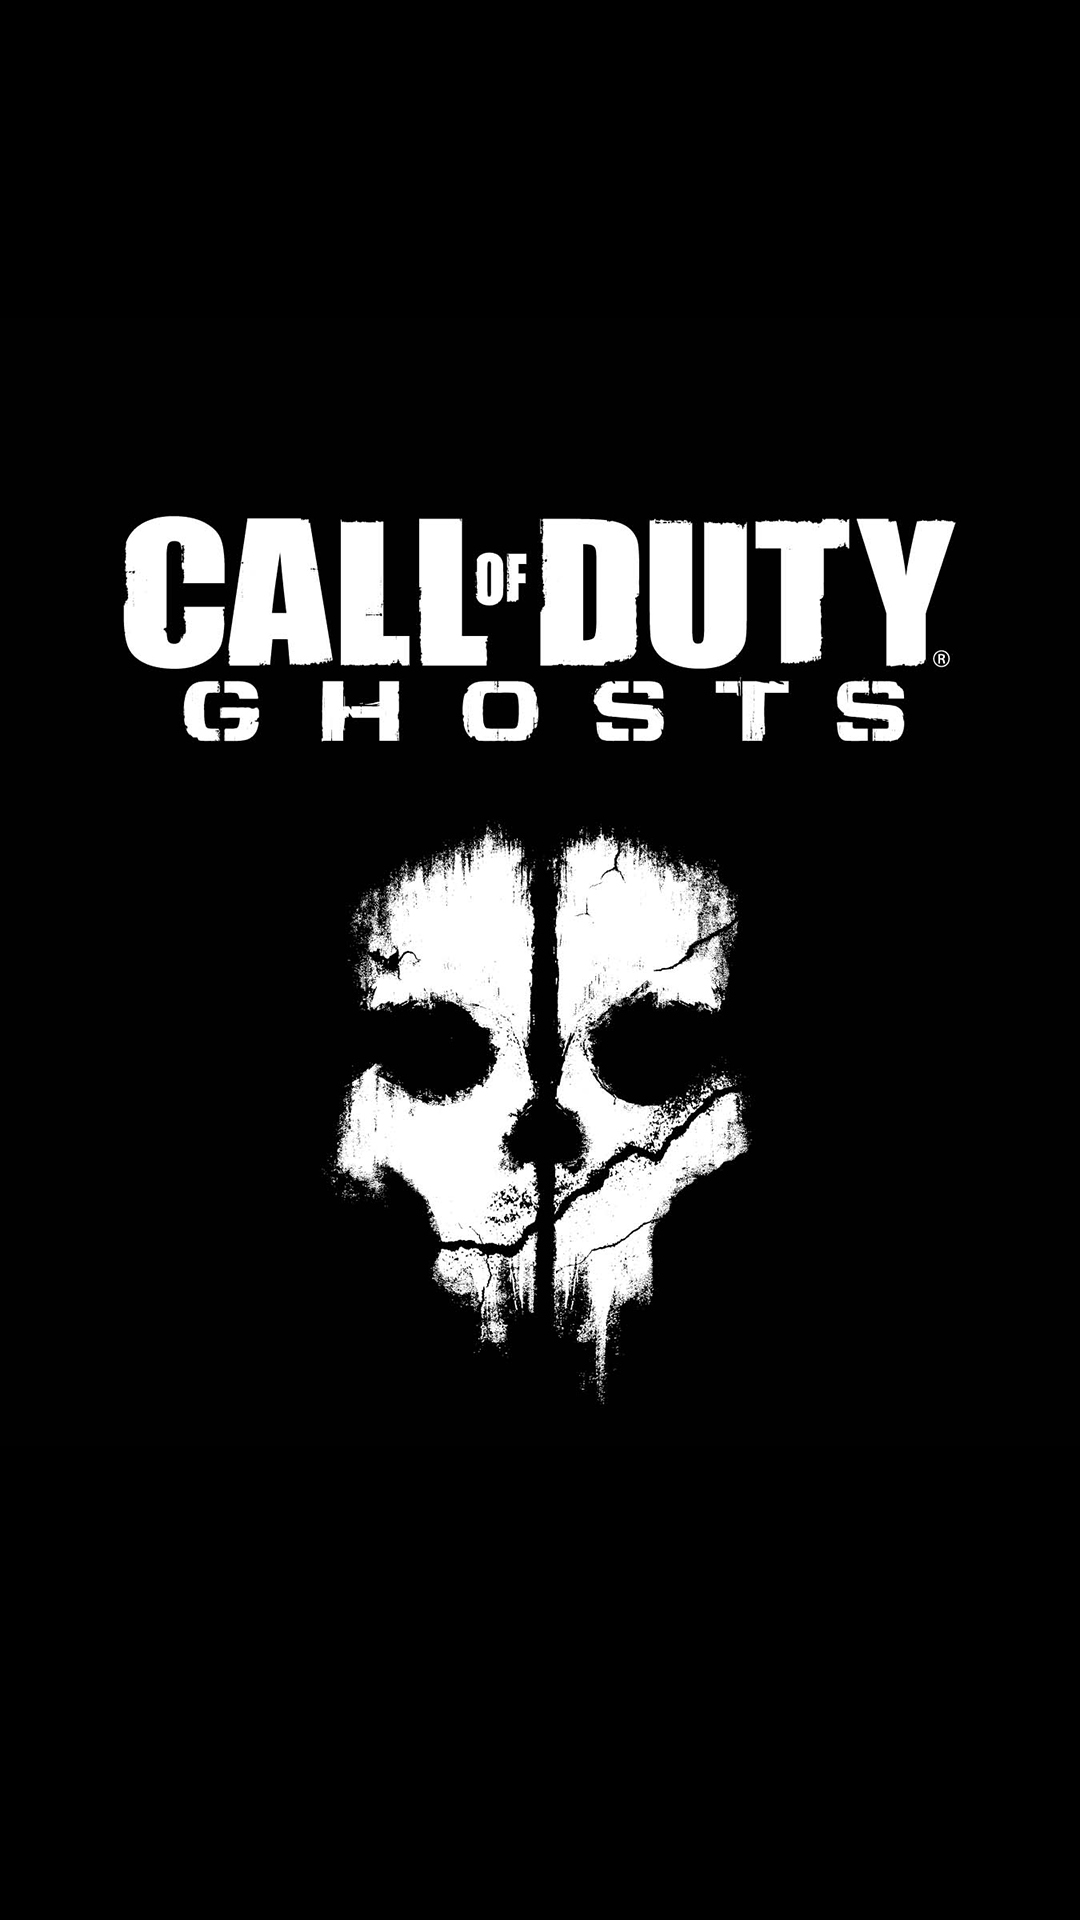 call of duty ghosts - best htc one wallpapers, free and easy to download